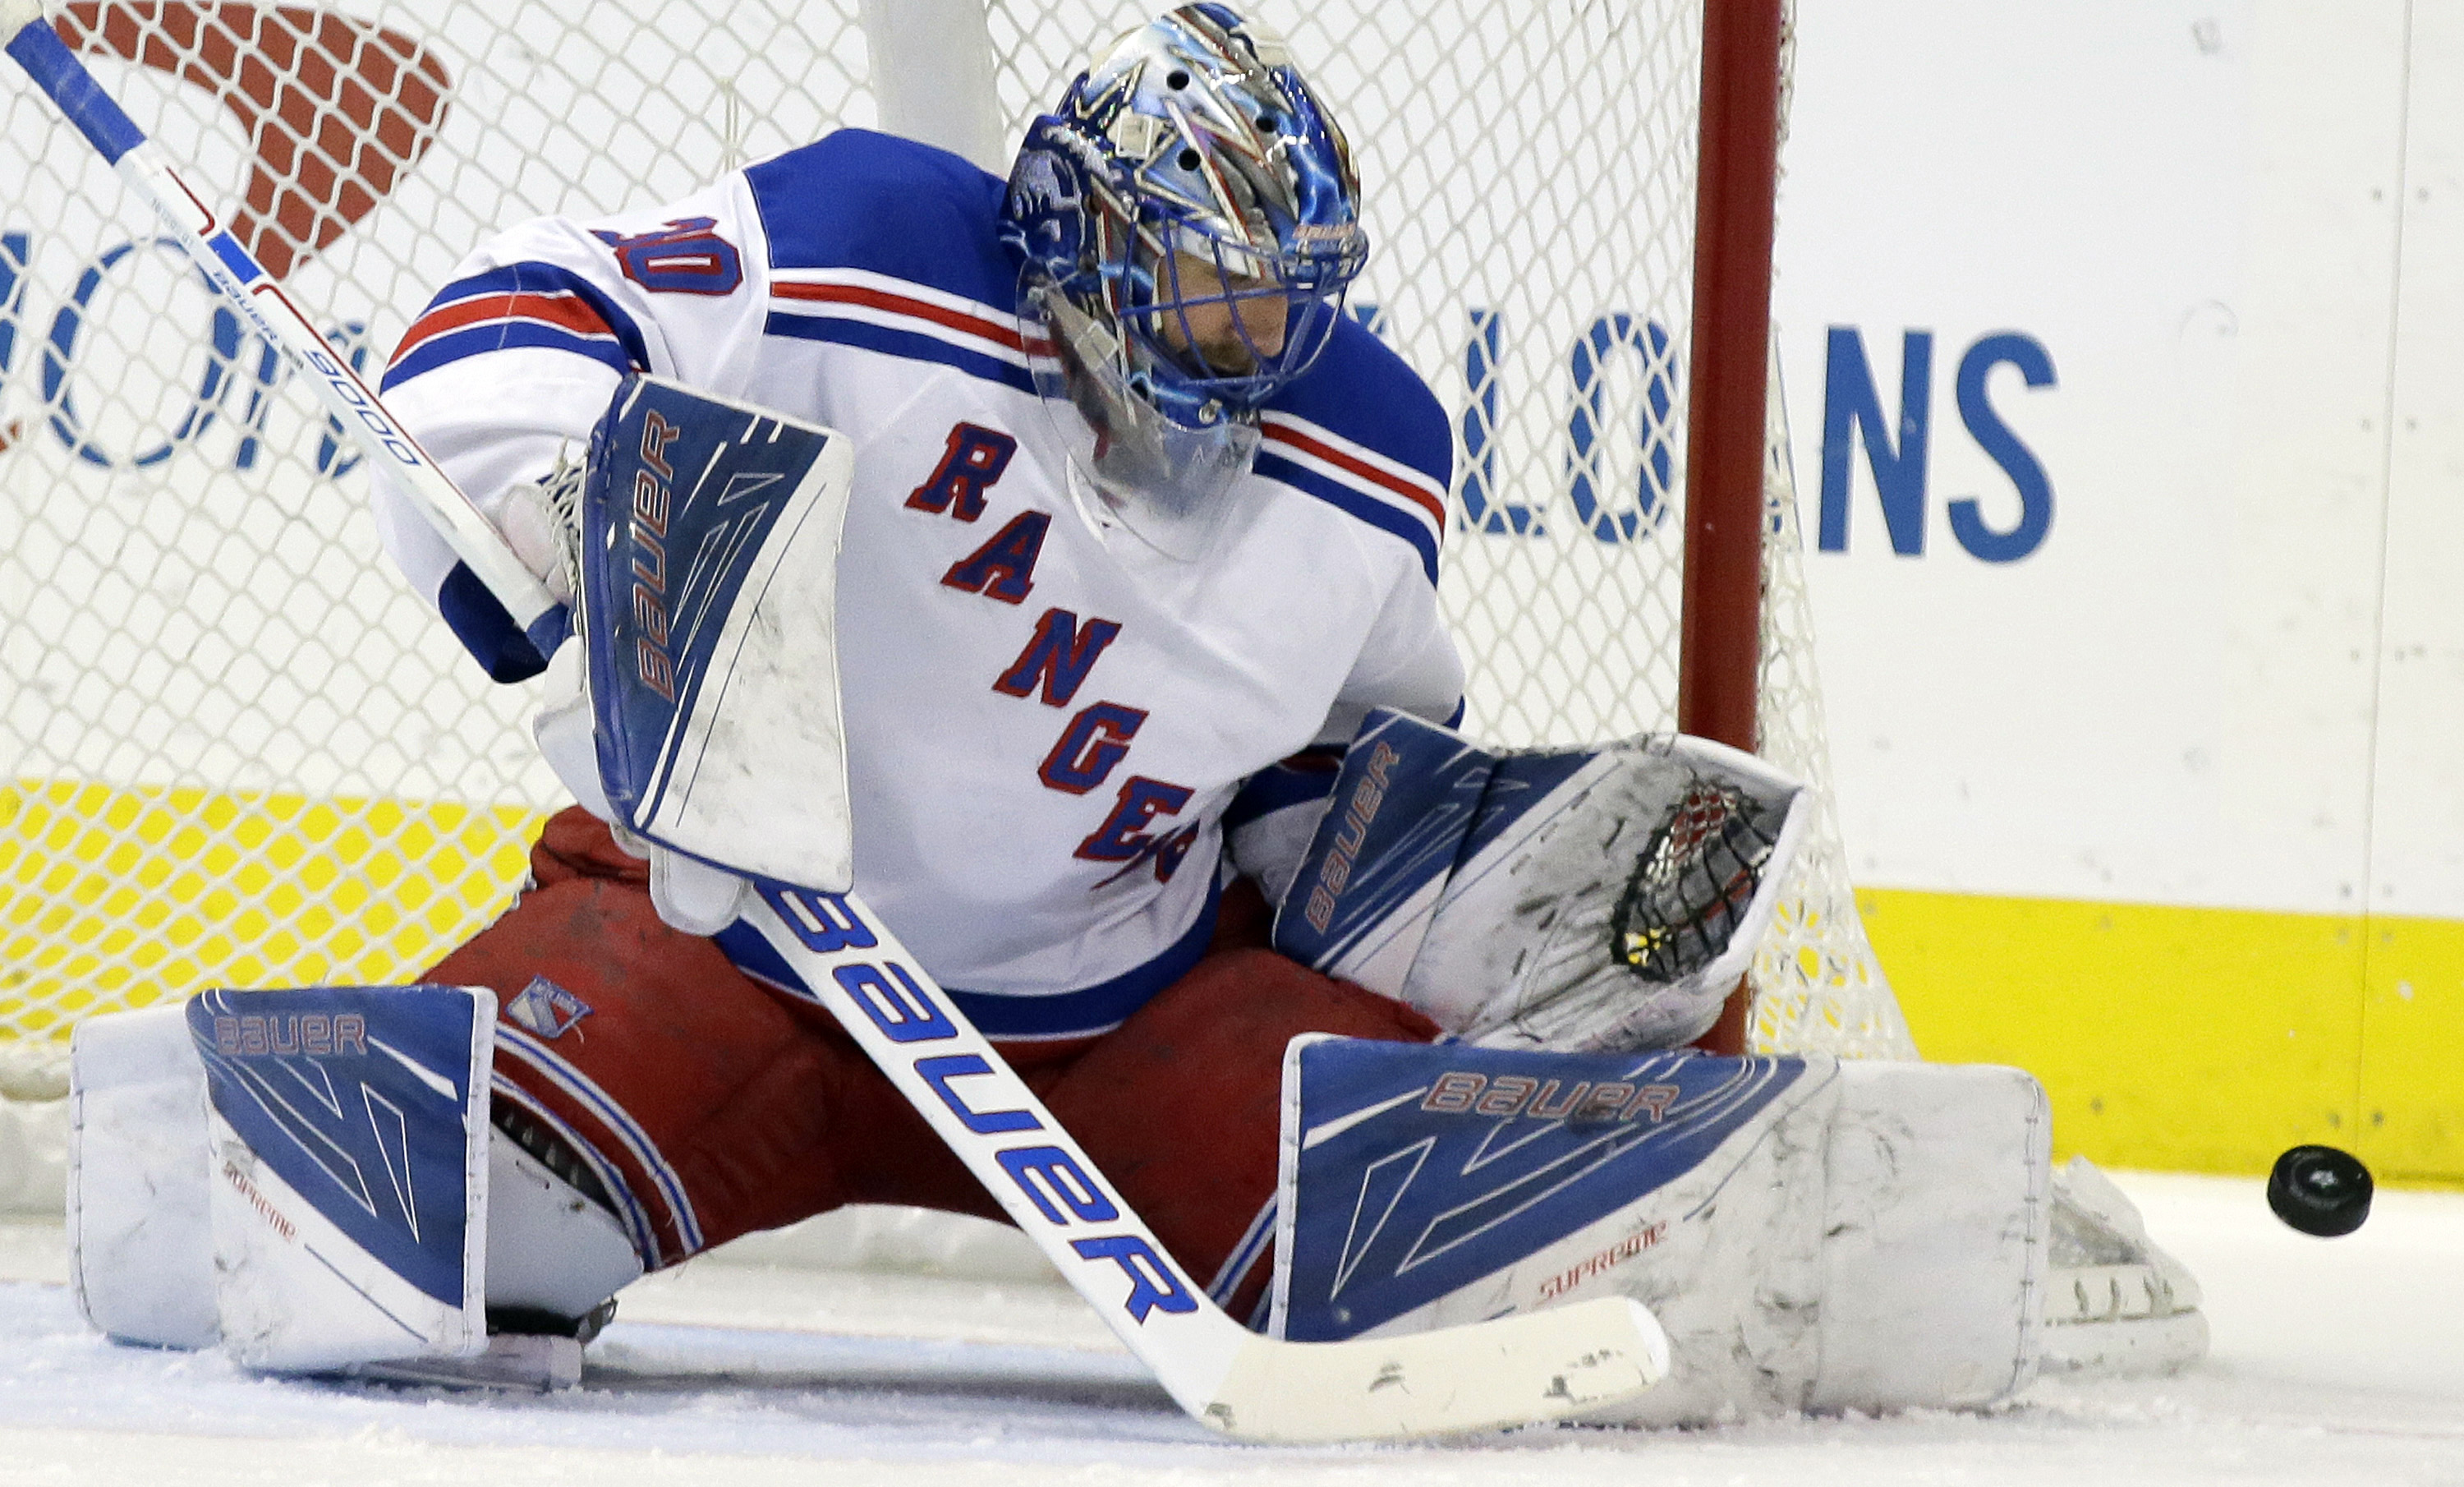 FILE - In this Feb. 27, 2016, file photo, New York Rangers goalie Henrik Lundqvist (30) blocks a shot on goal during the first period of an NHL hockey game against the Dallas Stars in Dallas. The Rangers open the Stanley Cup playoffs on Wednesday, April 1